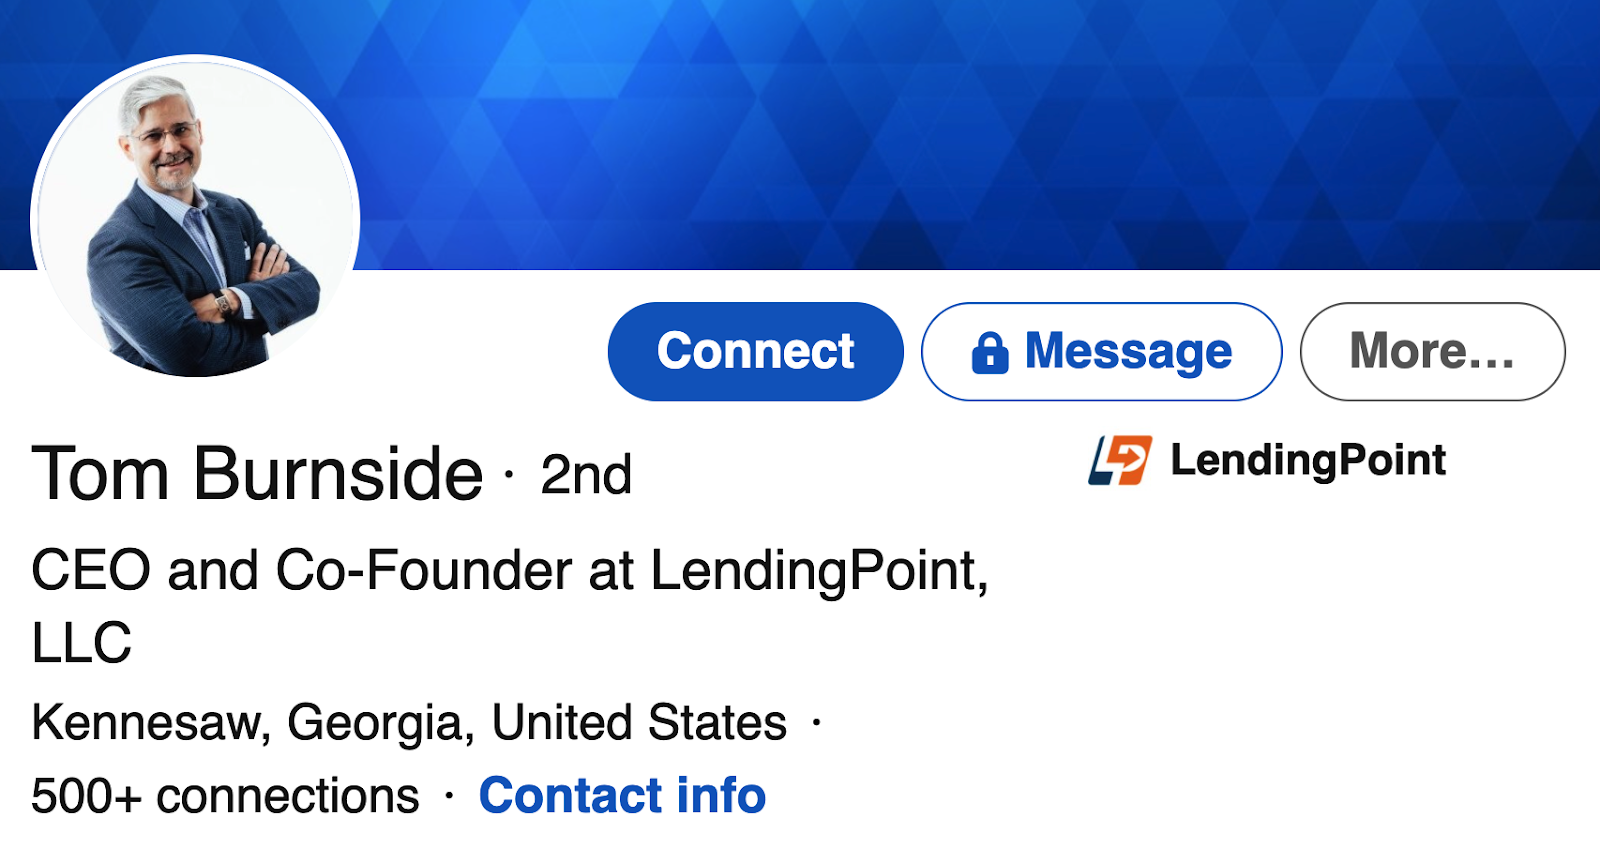 Where is LendingPoint located?